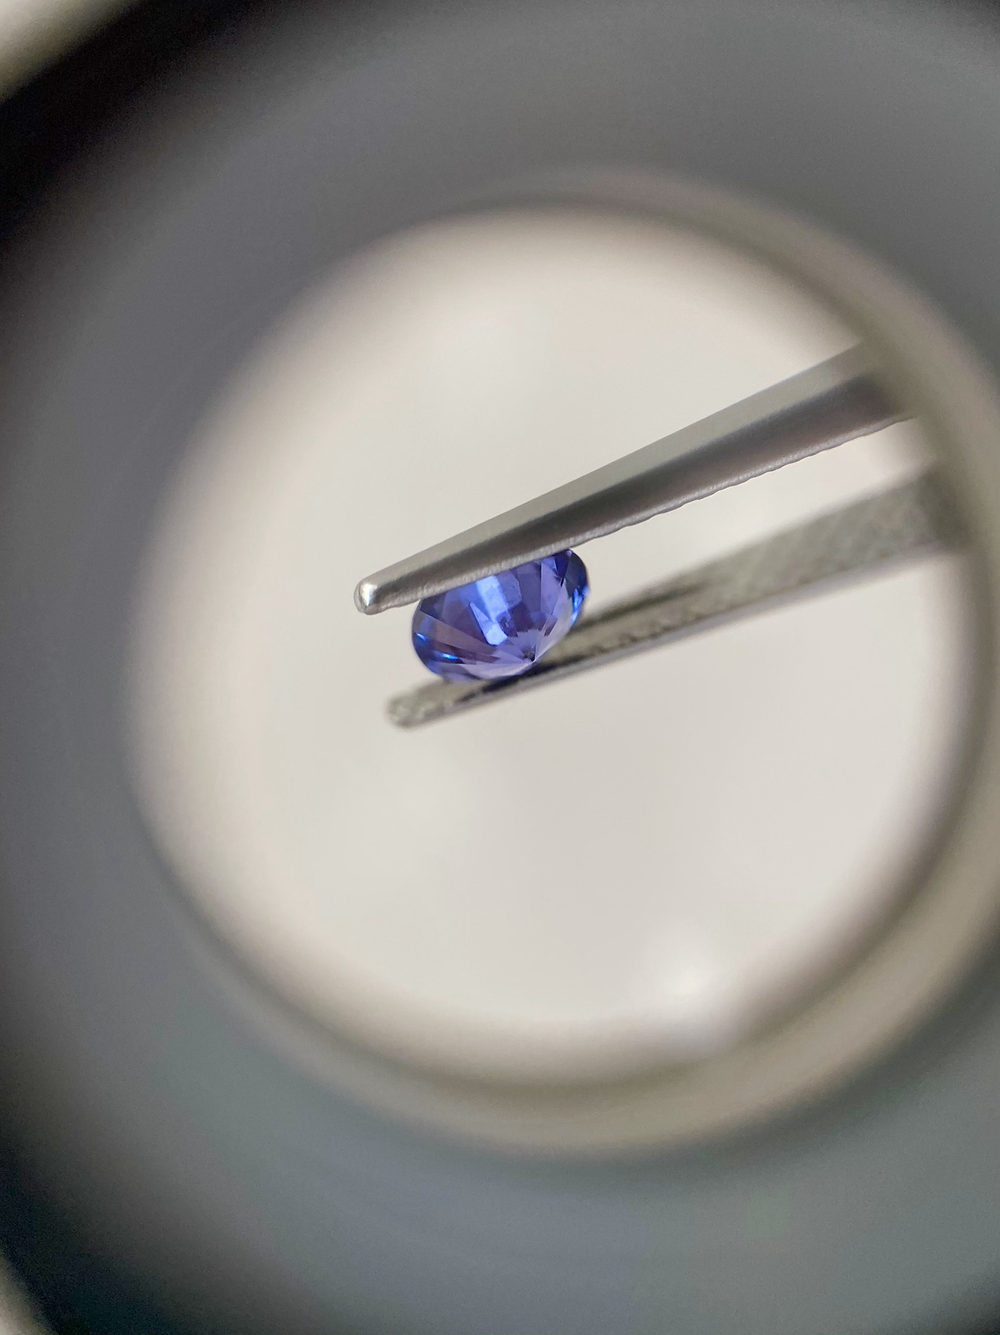 round purple sapphire held in tweezers under loupe magnification showing stone pavilion